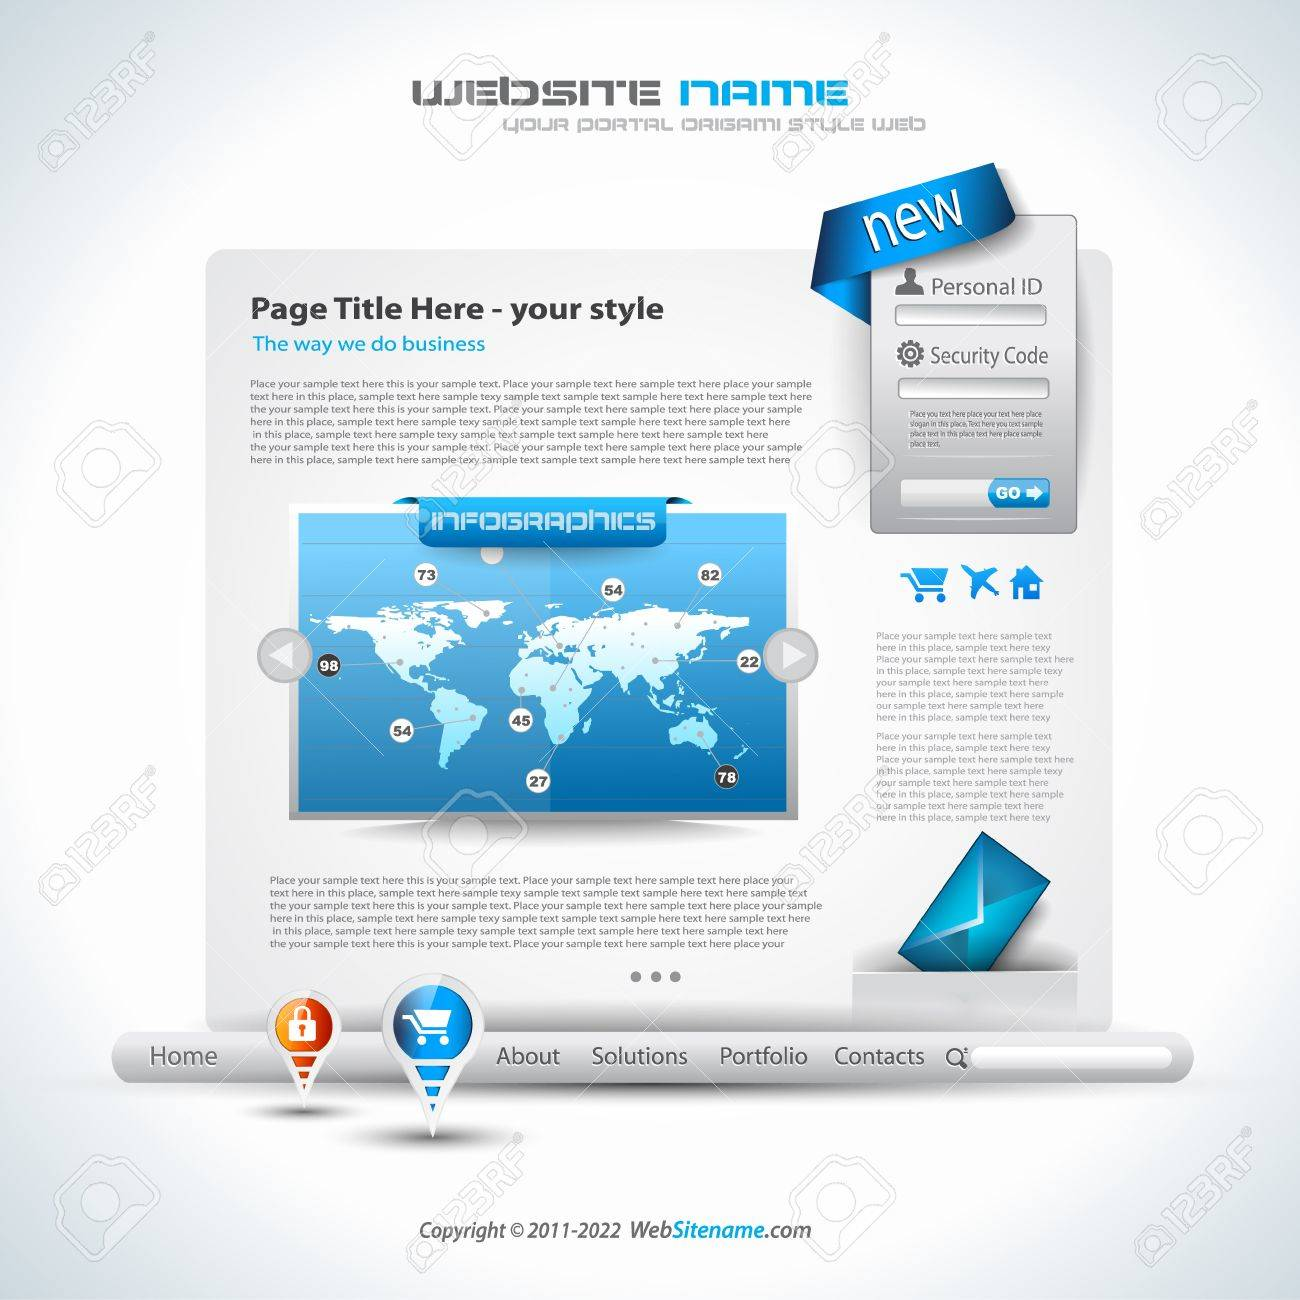 Origami Website - Elegant Design for Business Presentations  Template with a lot of design elements  Transparent shadows Stock Vector - 13300067